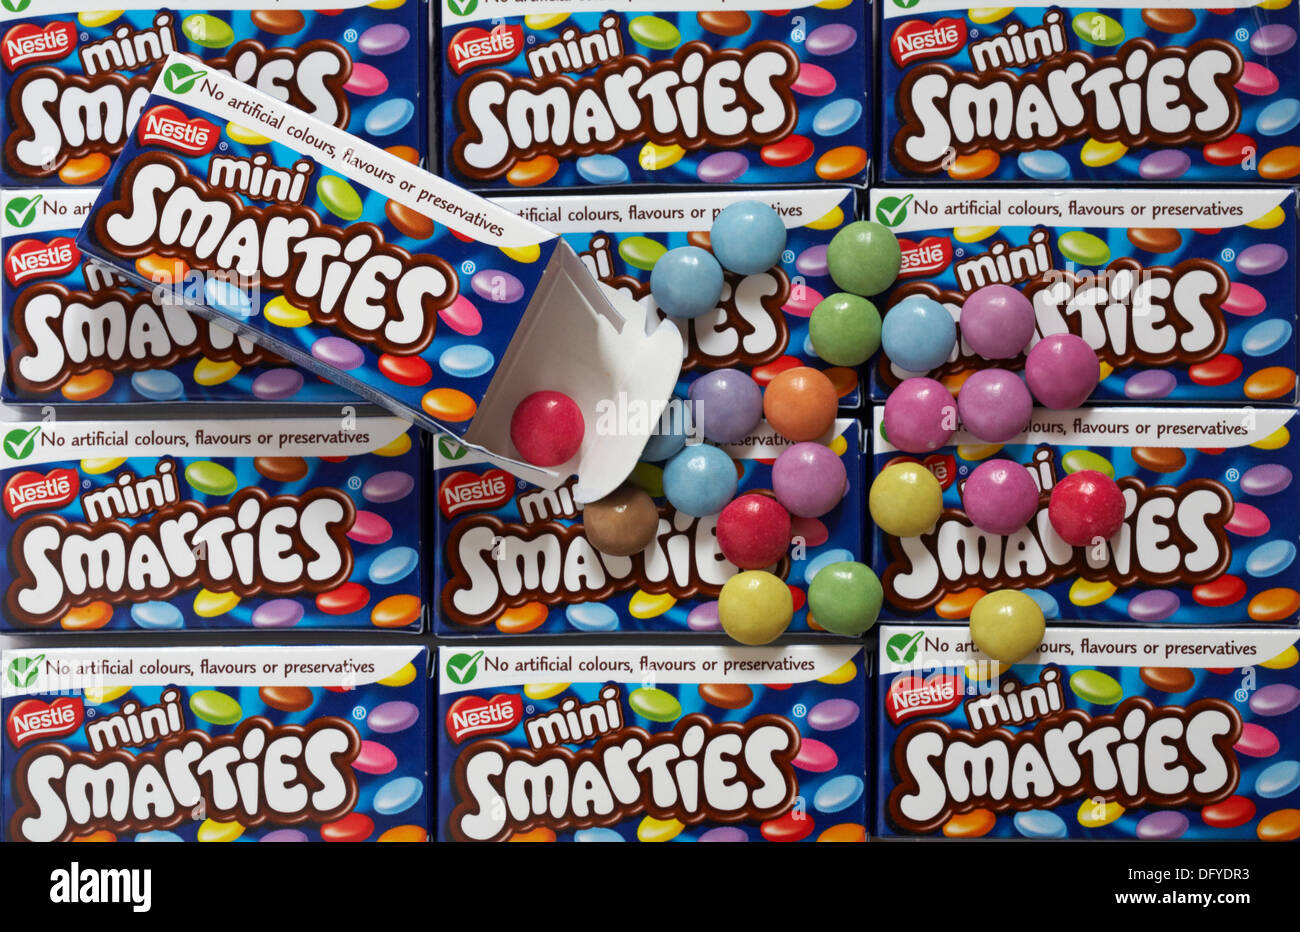 Mini In De Box.Boxes Of Treat Size Nestle Mini Smarties With Box Undone To Show